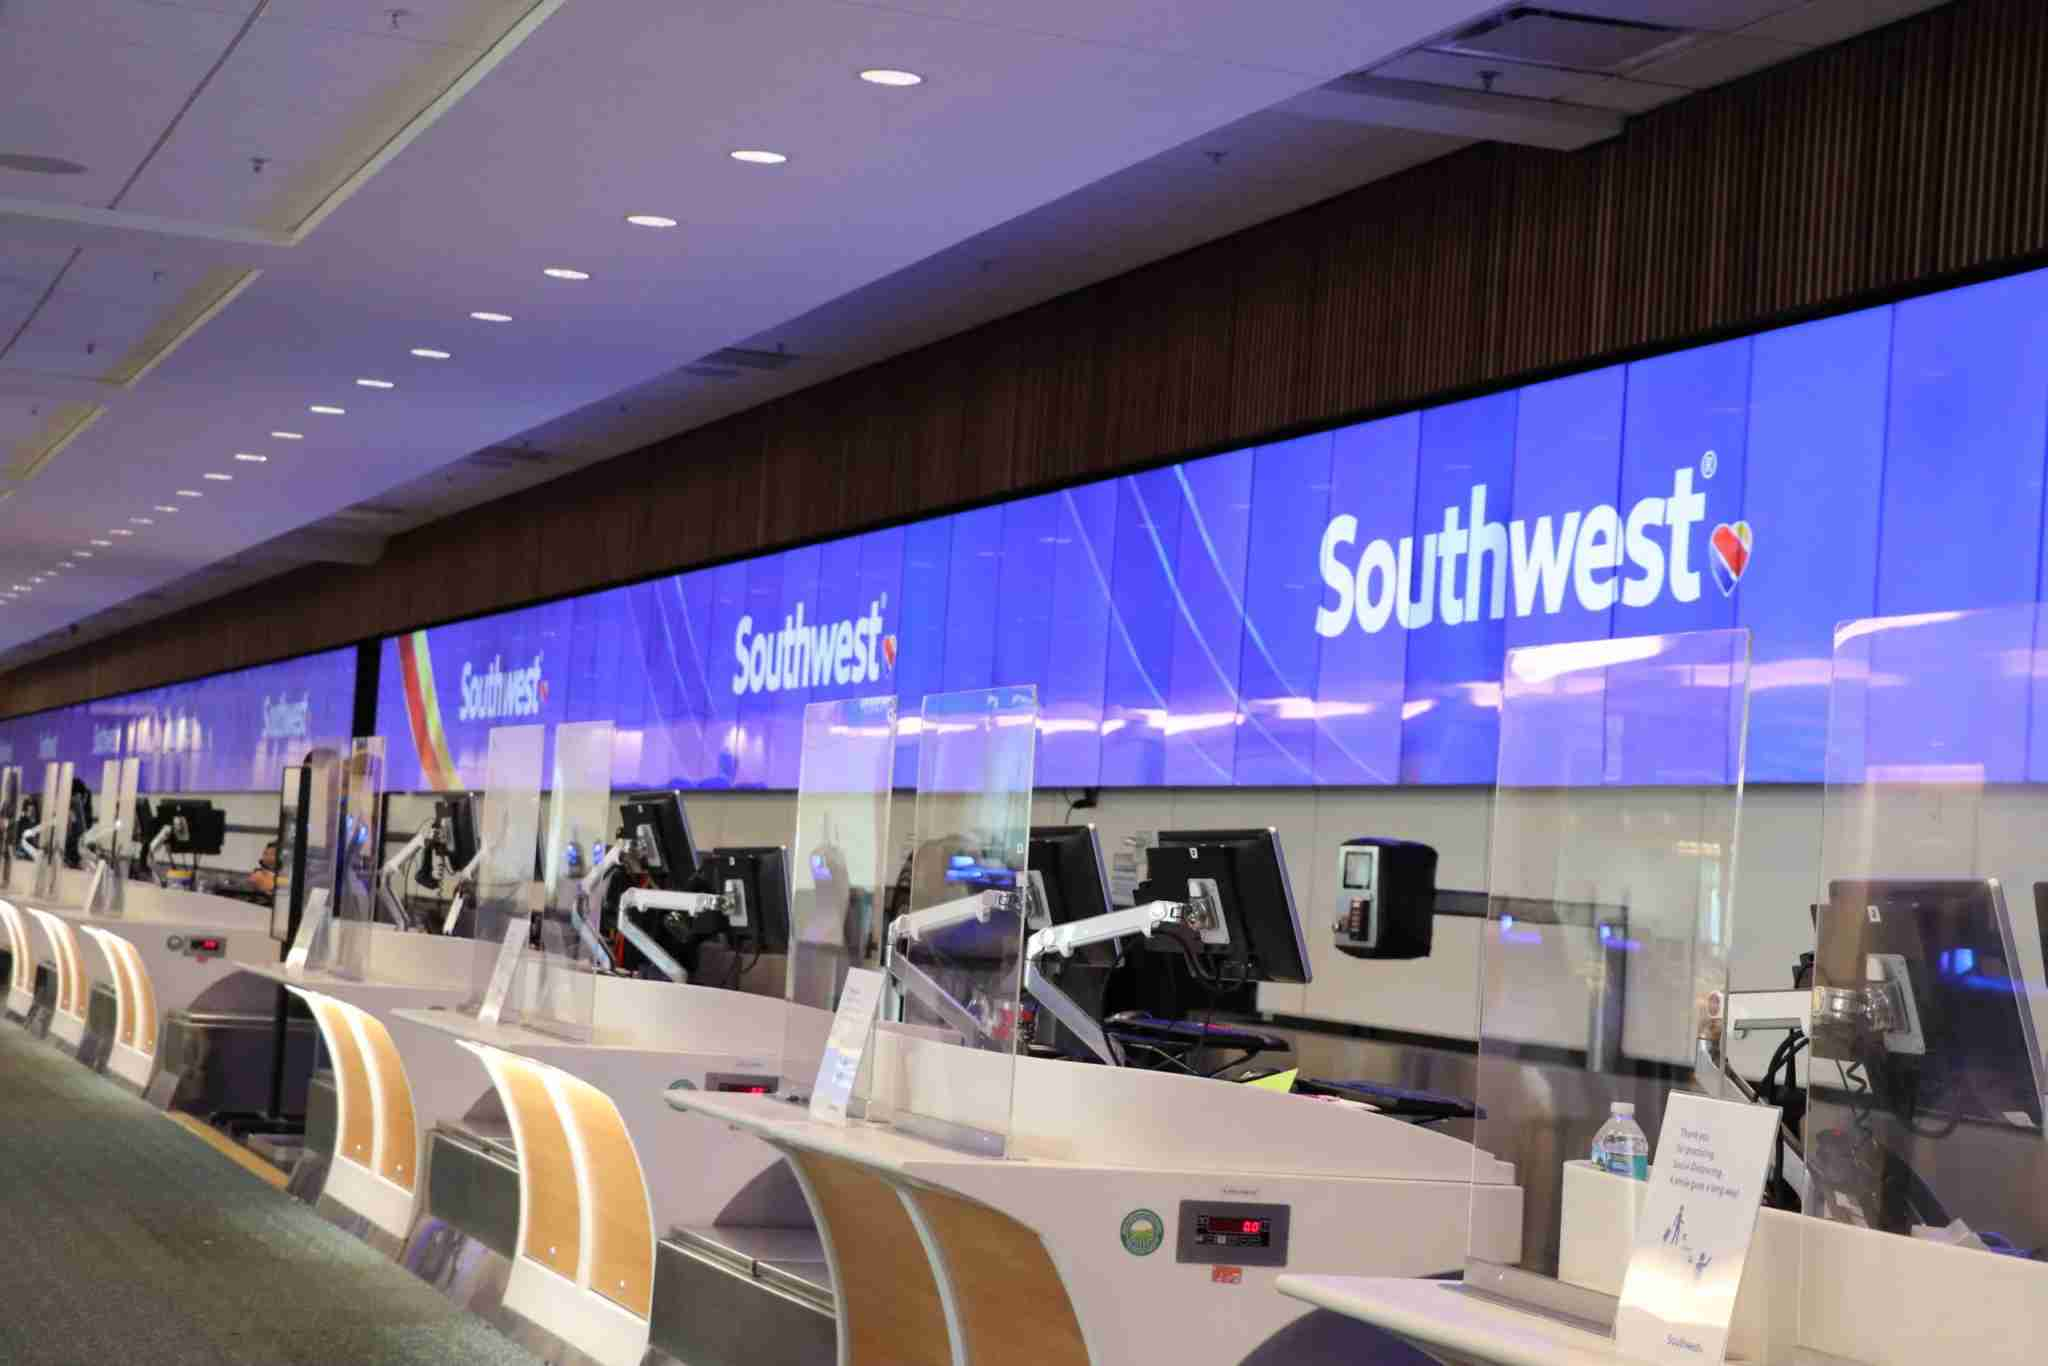 Plastic protective barriers are now in place at check-in counters at Orlando International Airport, including for Southwest. (Image courtesy of Orlando International Airport)